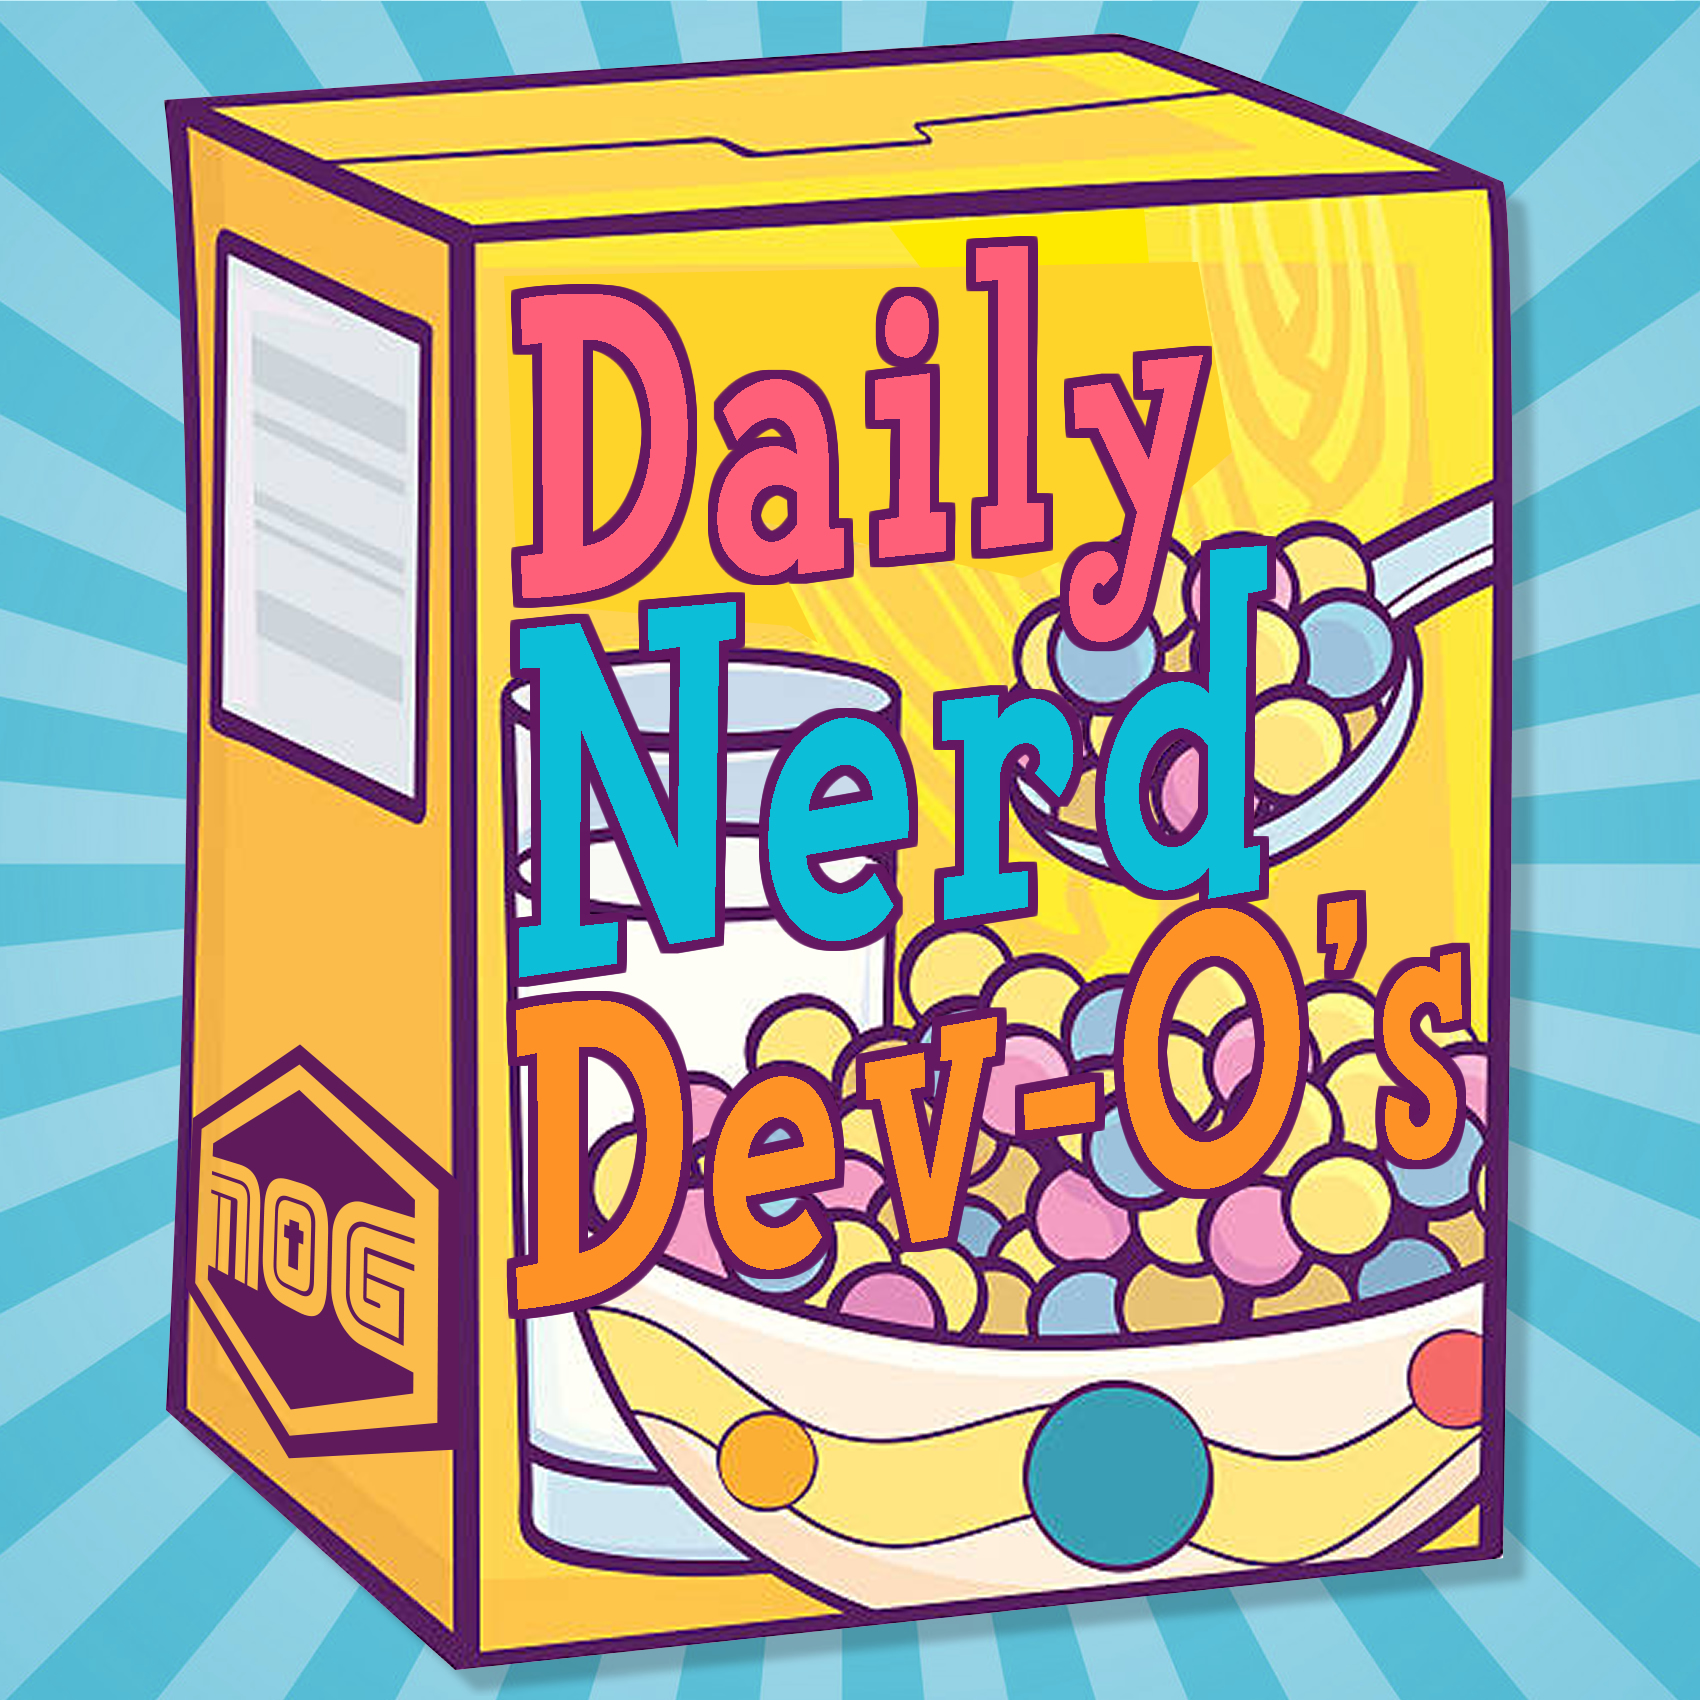 Show artwork for Daily Nerd Devo